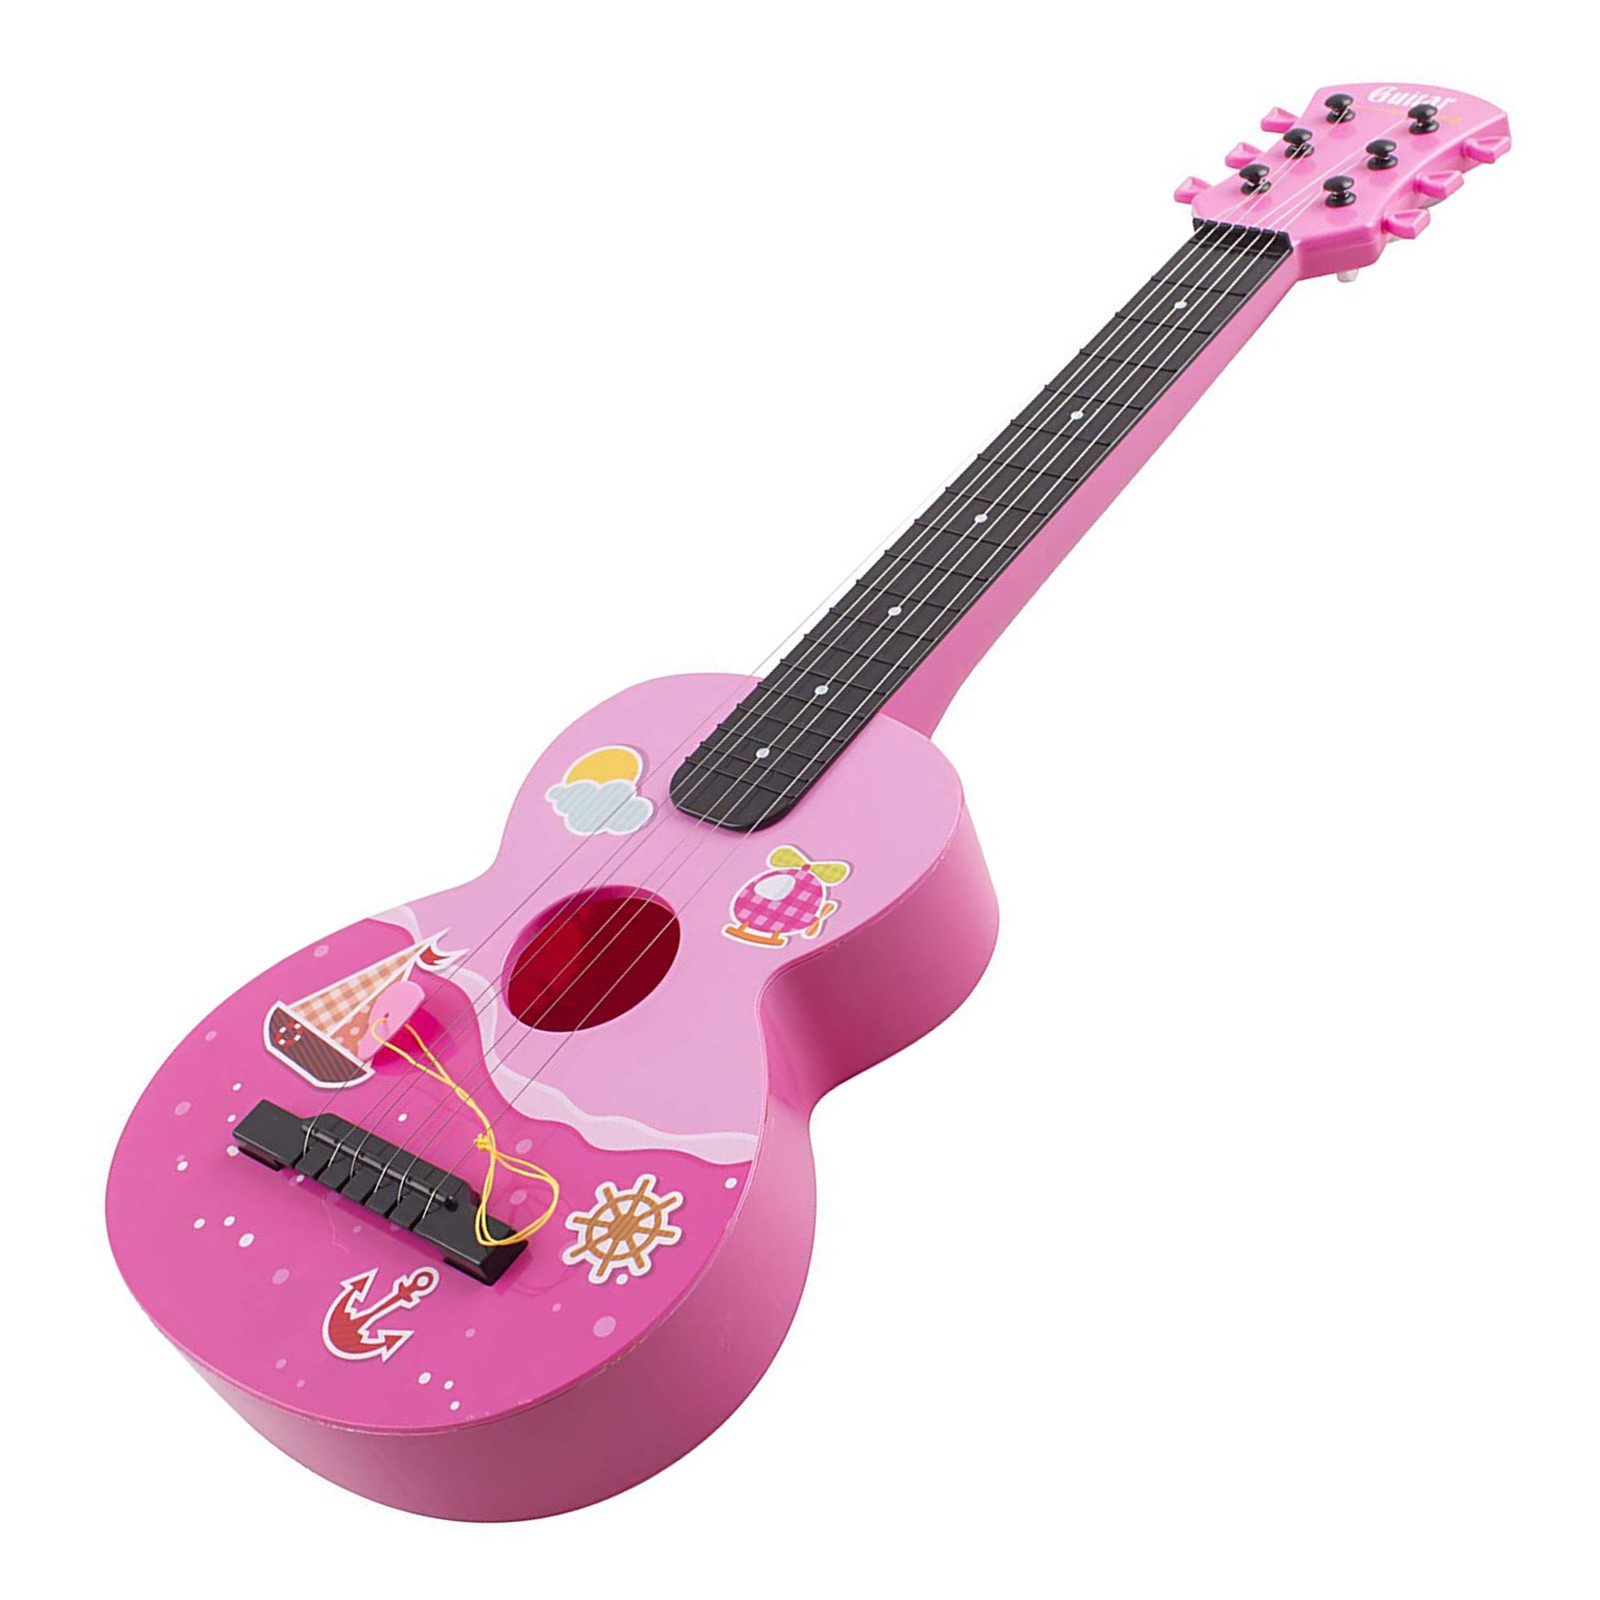 "Toy Guitar Rock Star 6 String Acoustic Kids 25.5"" Ukulele With Guitar Pick Children's Musical Instrument Vibrant Sound Tunable Strings Educational And Perfect For Learning How To Play Pink Color"